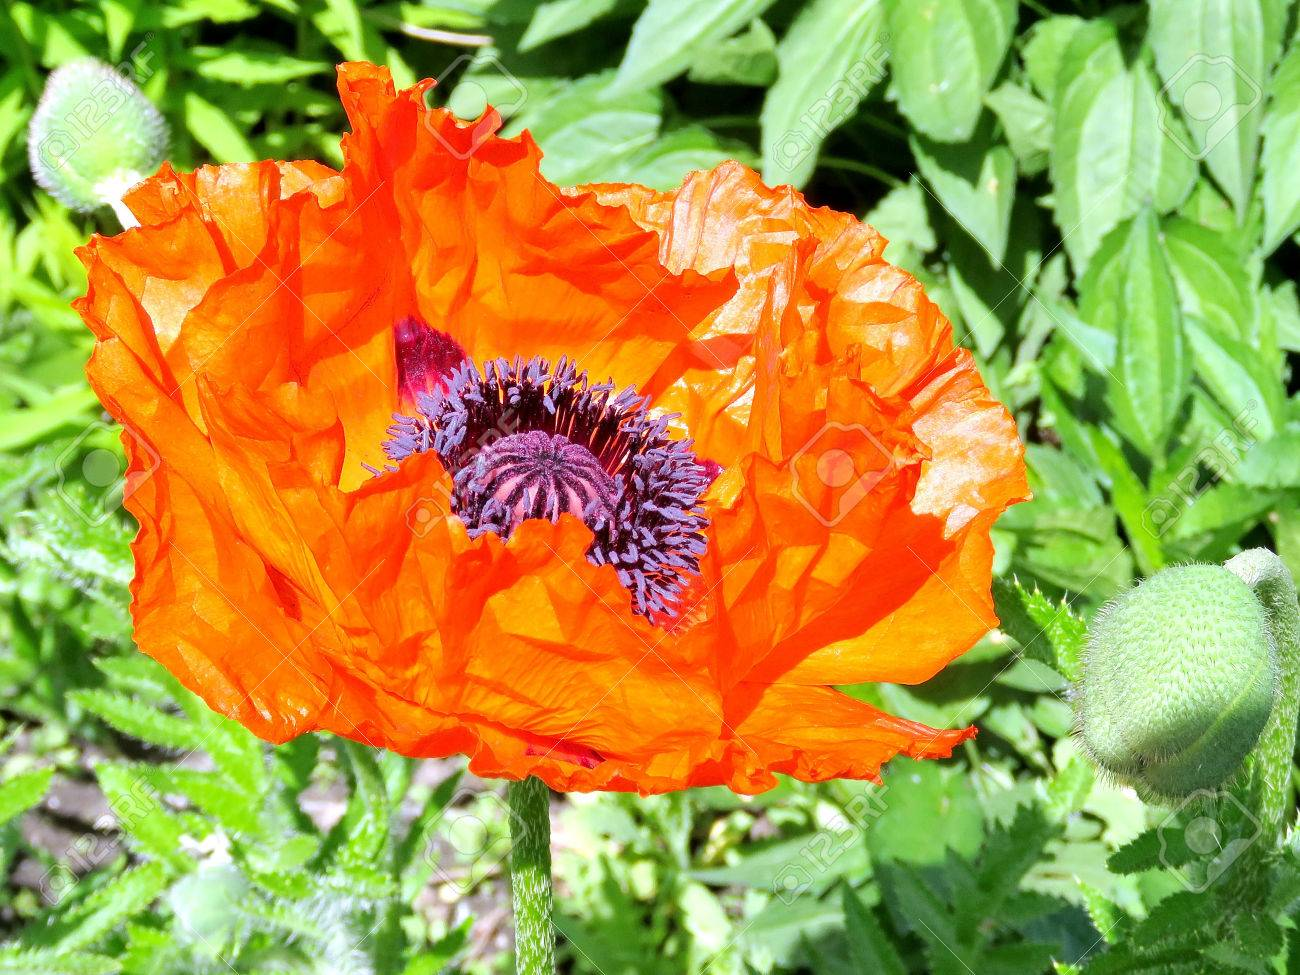 Red Poppy Flower In High Park Of Toronto Canada June 1 2017 Stock